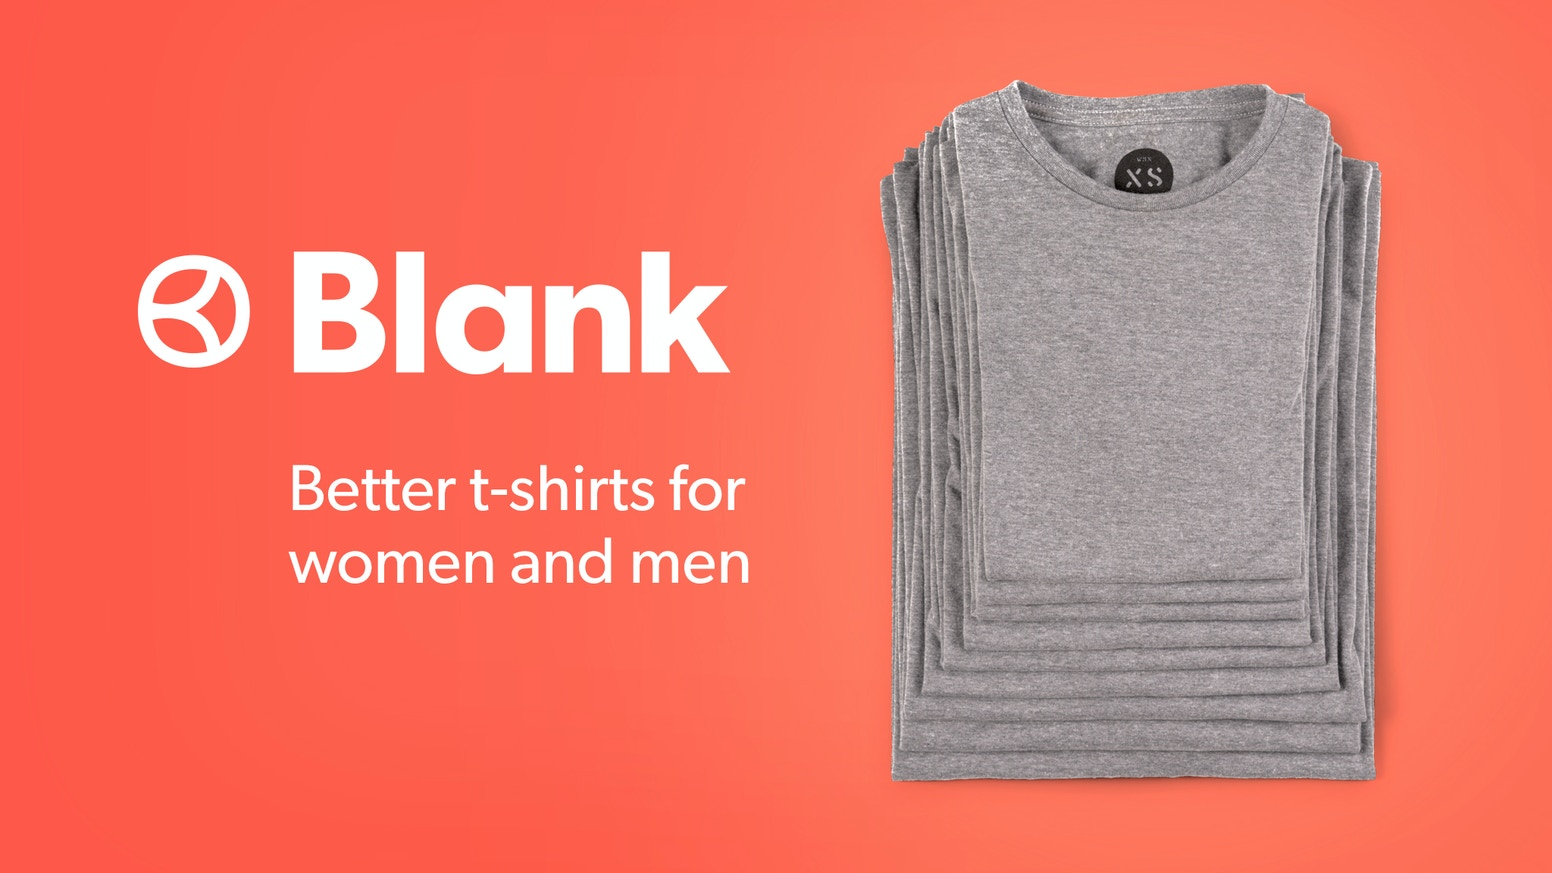 c3a7520c7 Blank, Better T-Shirts for Women and Men by Cotton Bureau. Size-inclusive,  made-in-the-USA, better-fitting,